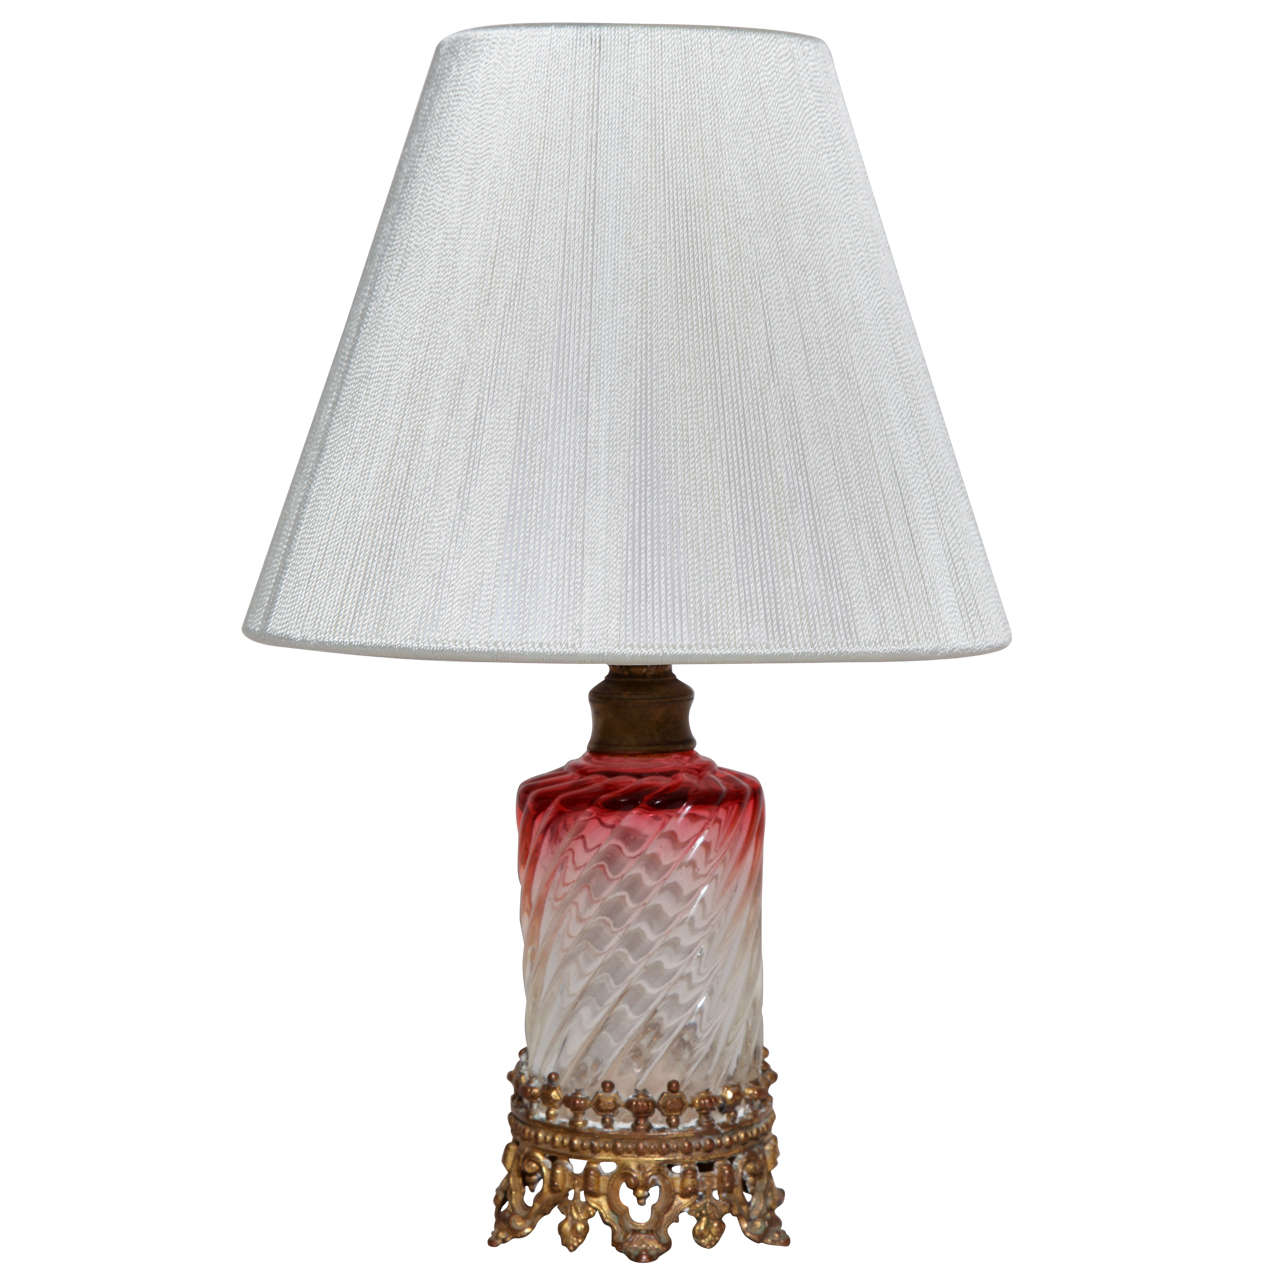 French Art Deco Small Cranberry Glass Table Lamp with Baccarat Crystal